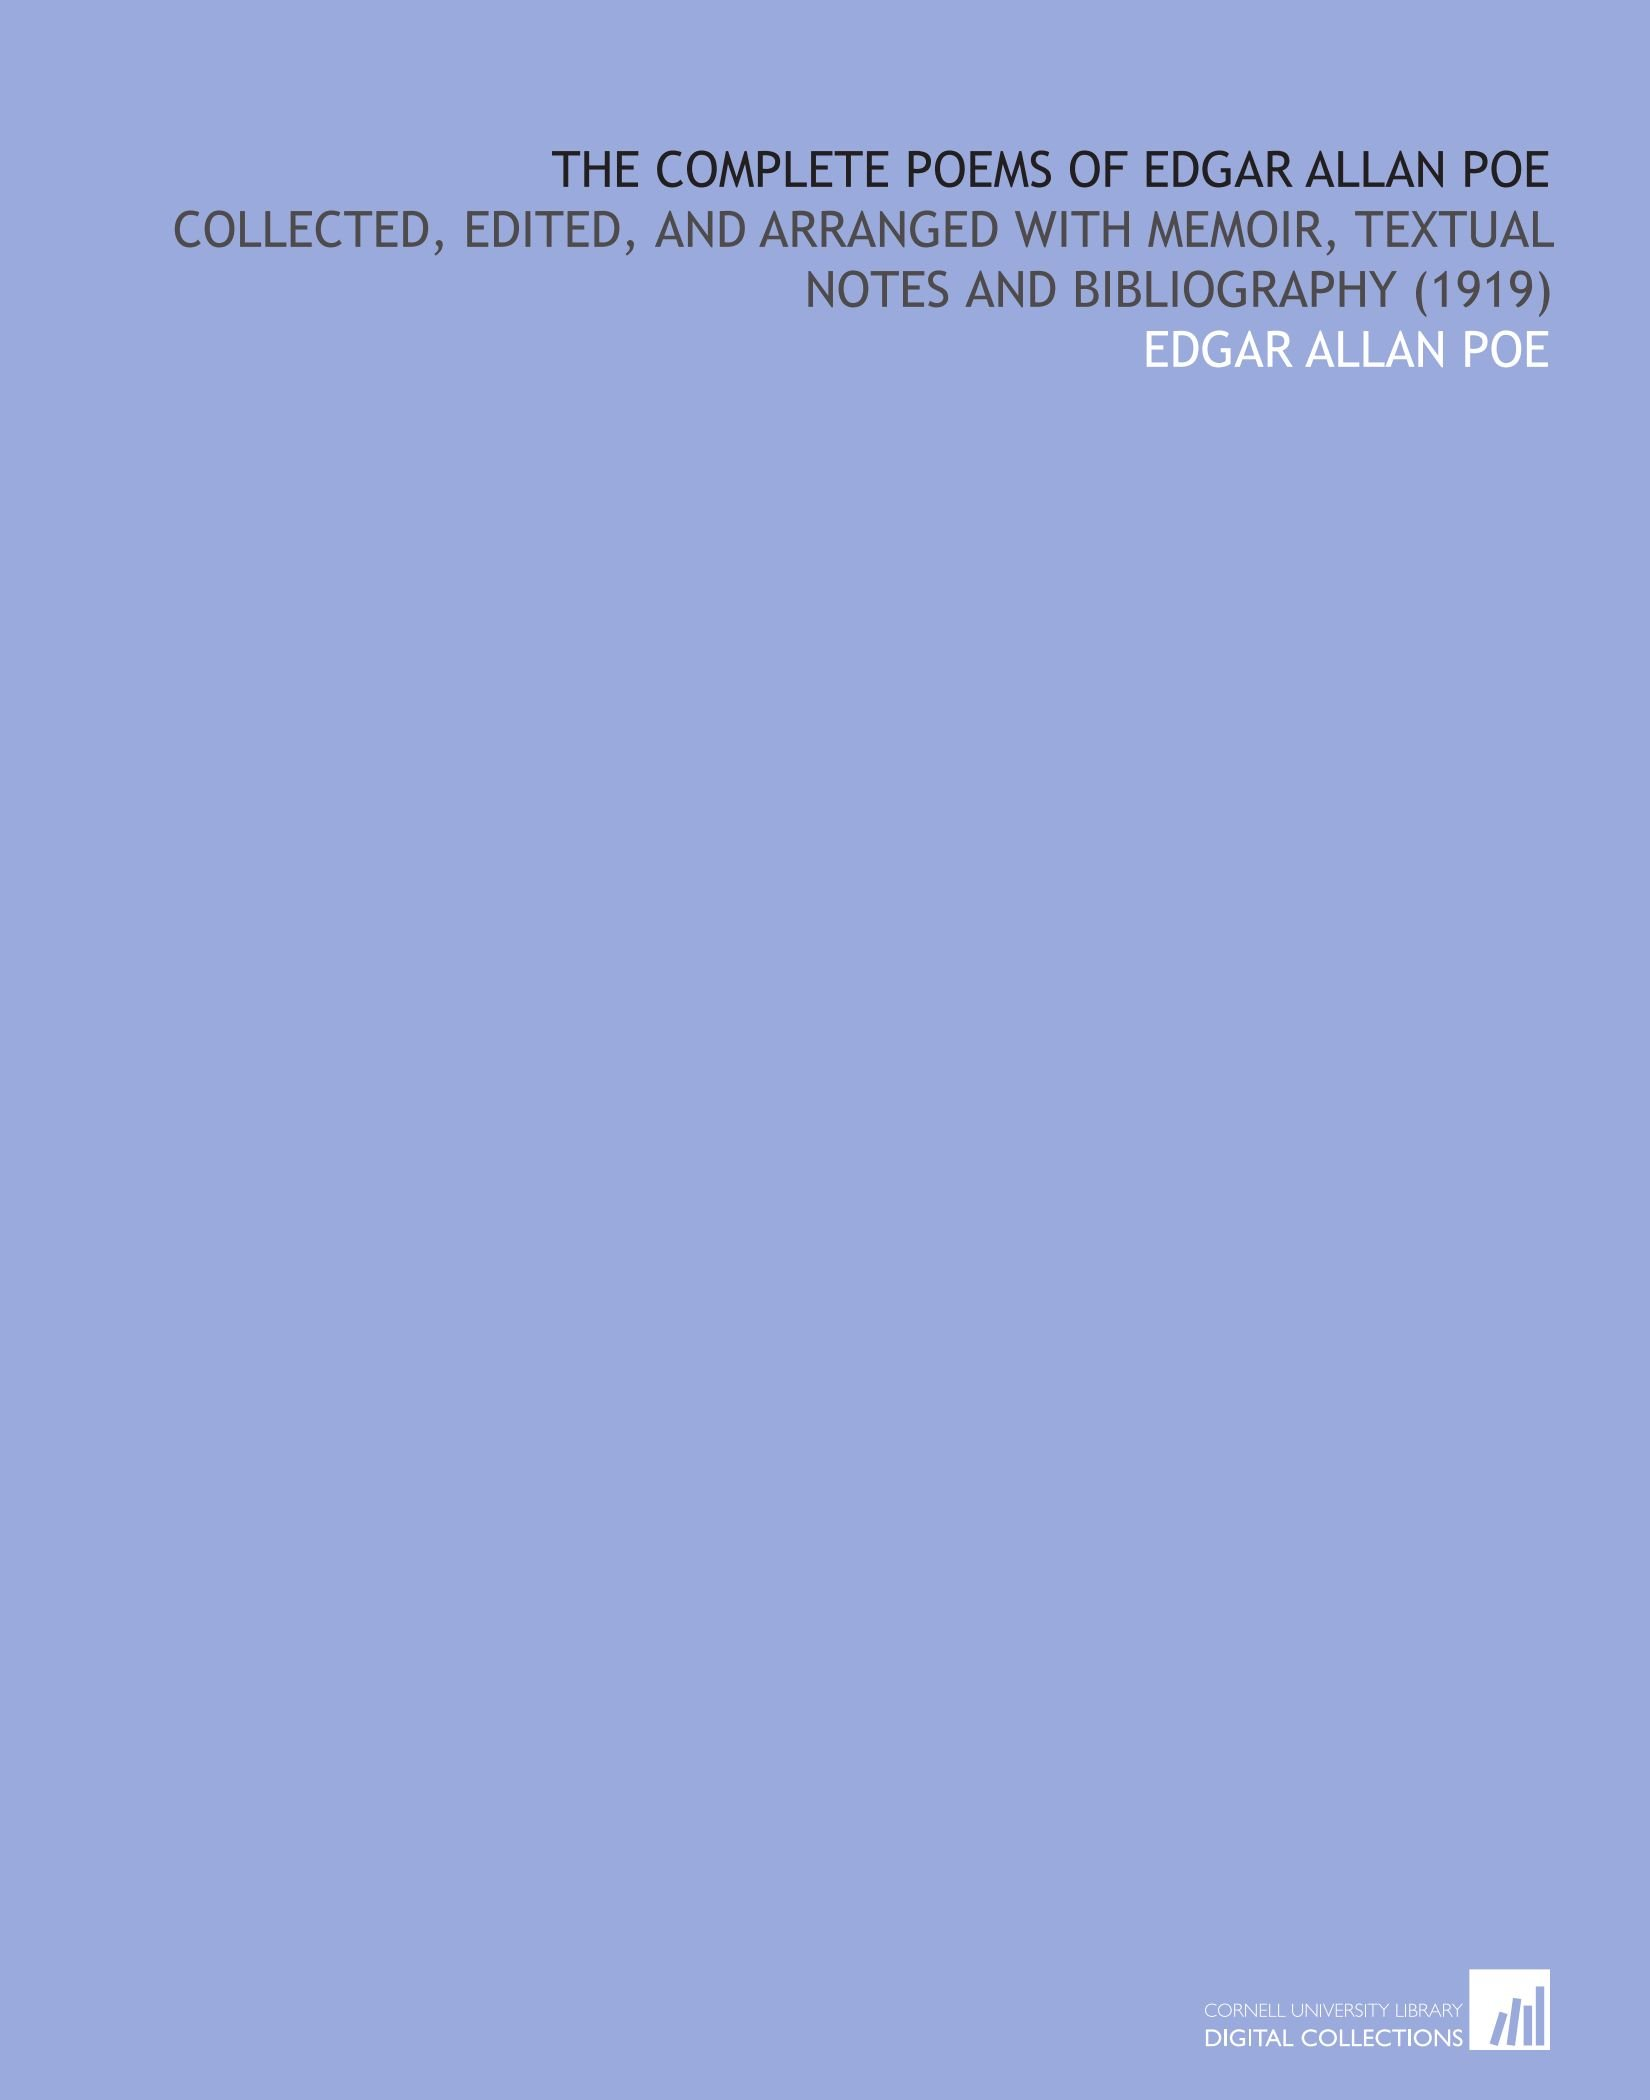 The Complete Poems of Edgar Allan Poe: Collected, Edited, and Arranged With Memoir, Textual Notes and Bibliography (1919) pdf